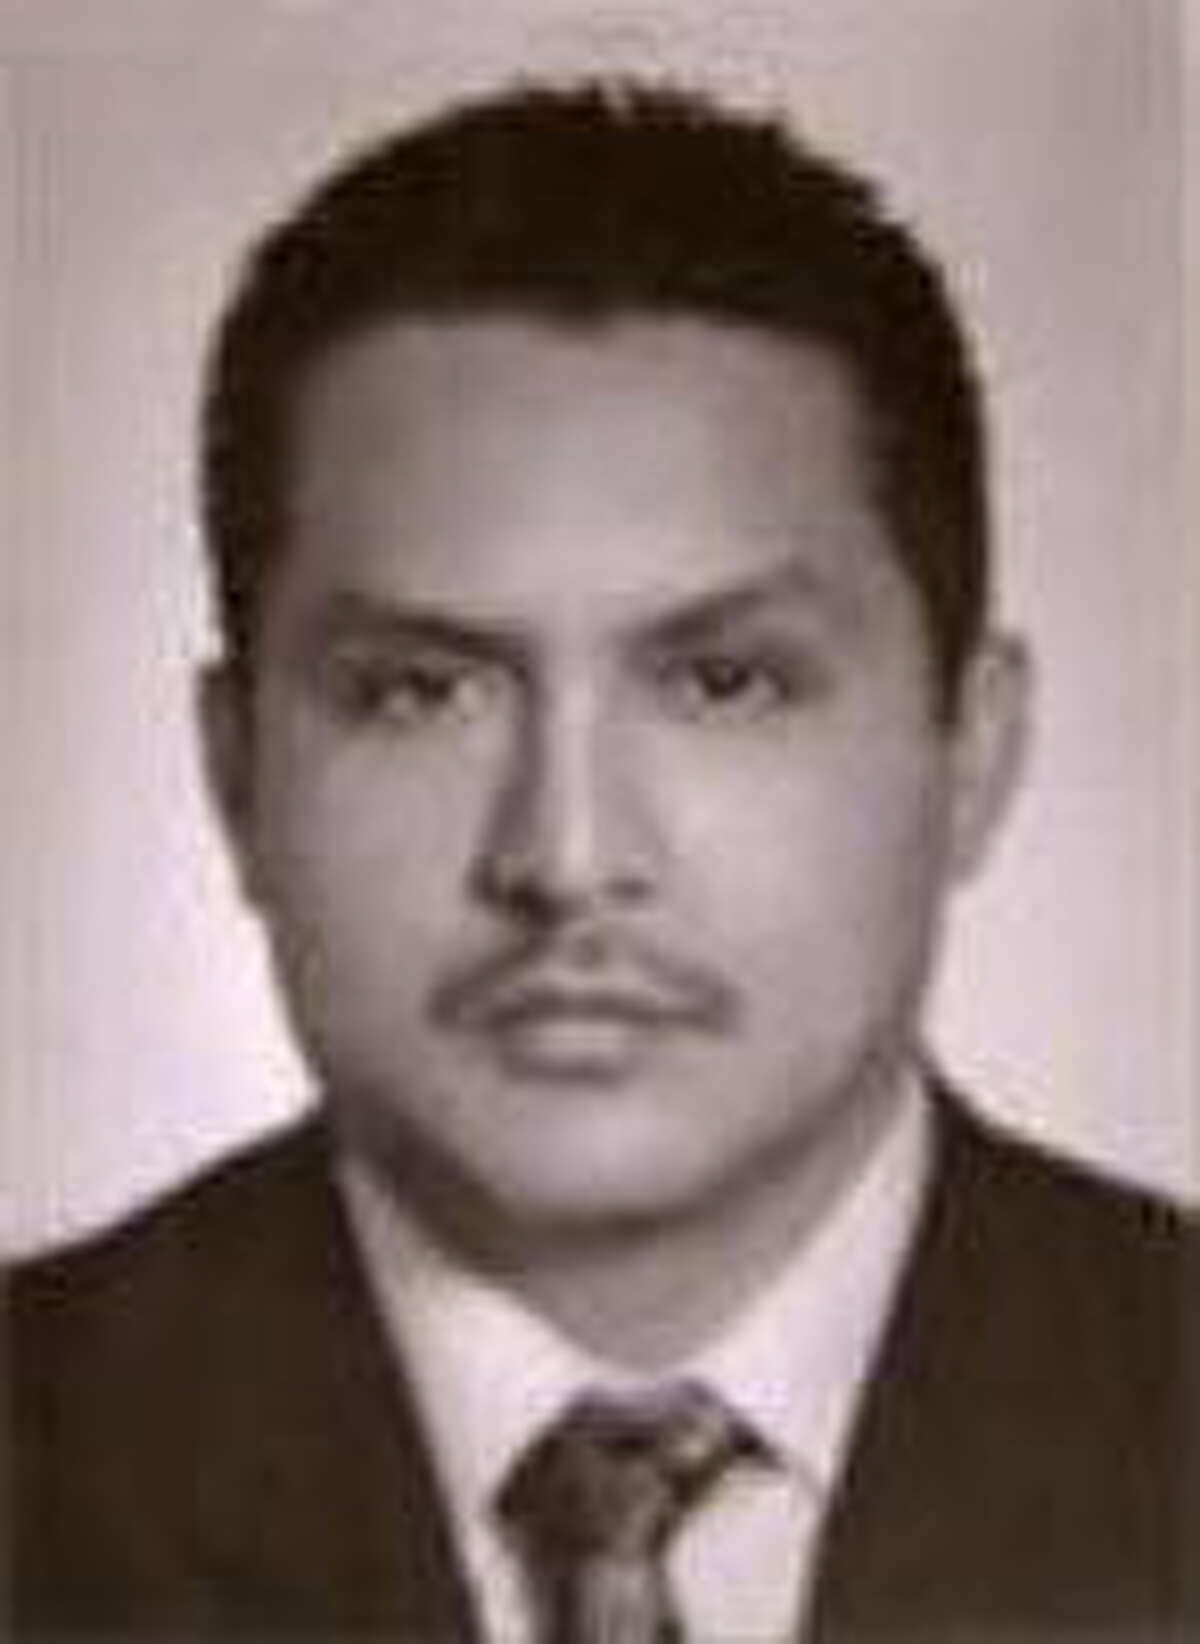 Zetas leader Miguel Treviño Morales is one of those charged in the money laundering conspiracy case.